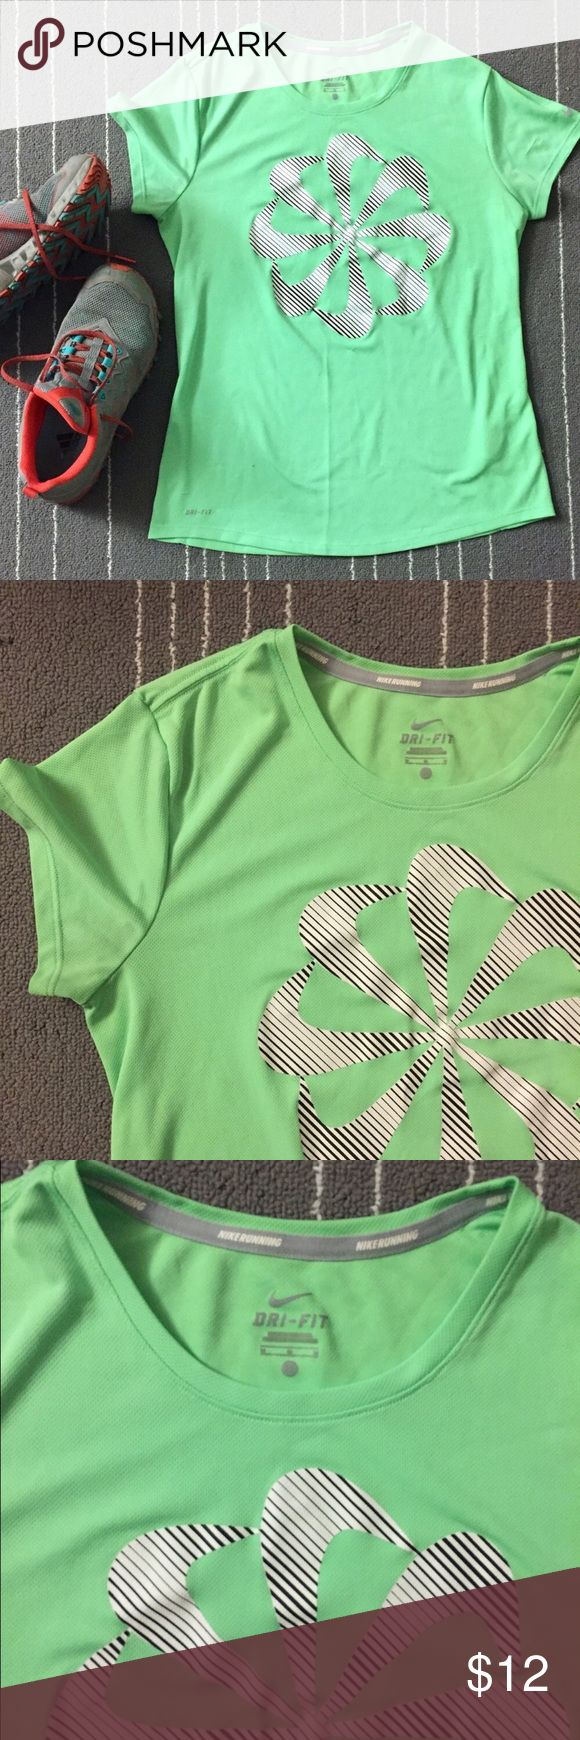 Nike women neon green running top with logo flower Nike women green running top. In excellent condition. Worn it few times. Color is more like neon green. Shorts sleeves. Size is M. Nike Tops Tees - Short Sleeve